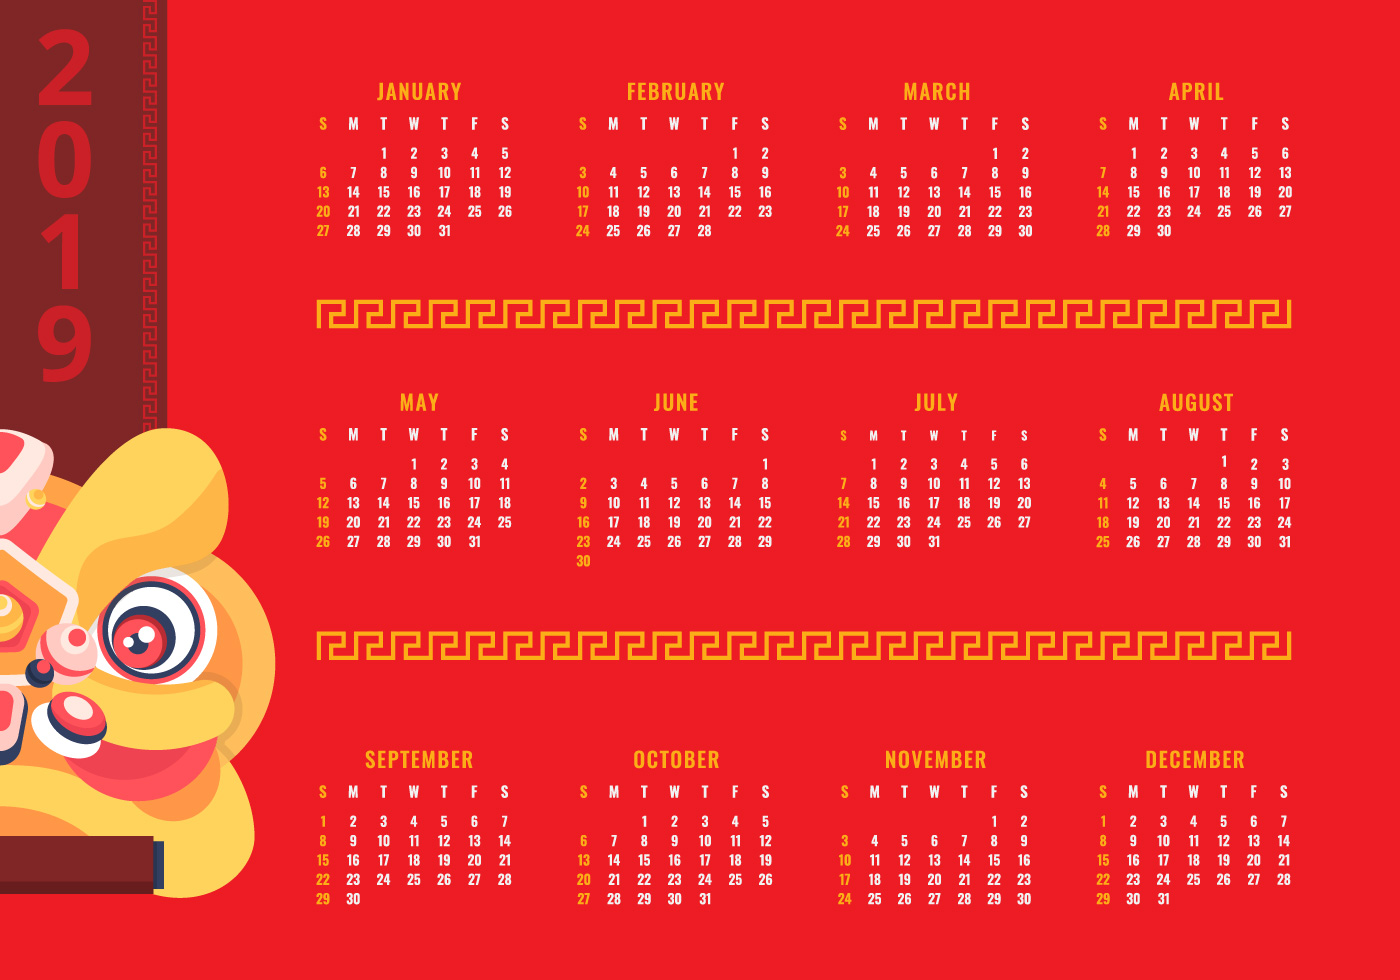 2019 Printable Chinese New Year Calendar - Download Free ...